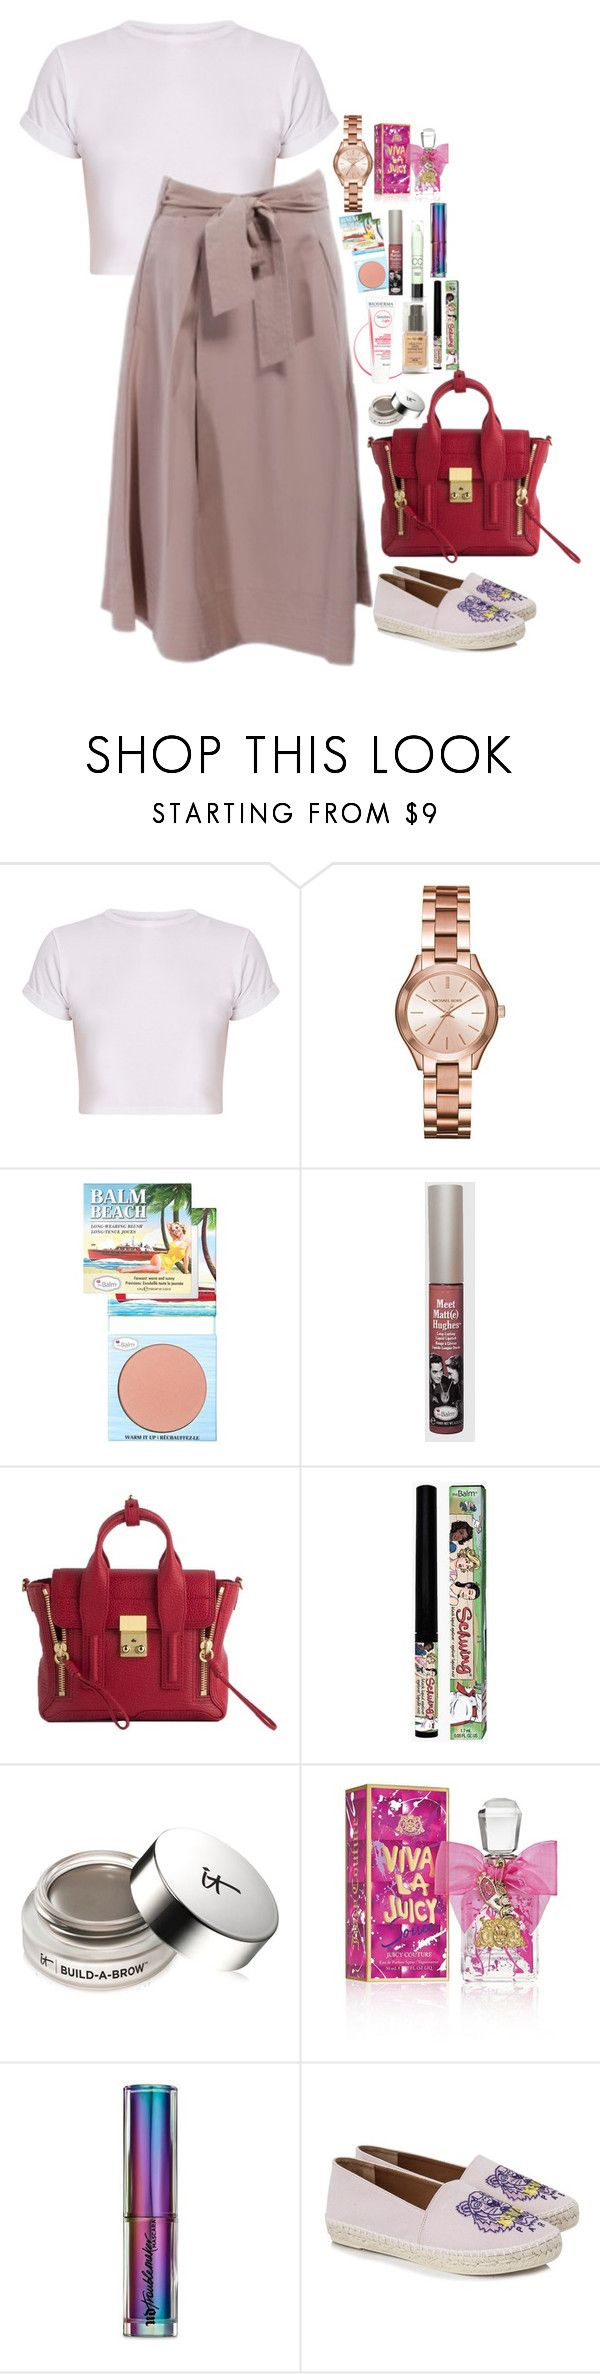 """Untitled #5168"" by veronicaptr ❤ liked on Polyvore featuring Michael Kors, TheBalm, 3.1 Phillip Lim, Max Factor, It Cosmetics, Juicy Couture, Urban Decay and Kenzo"